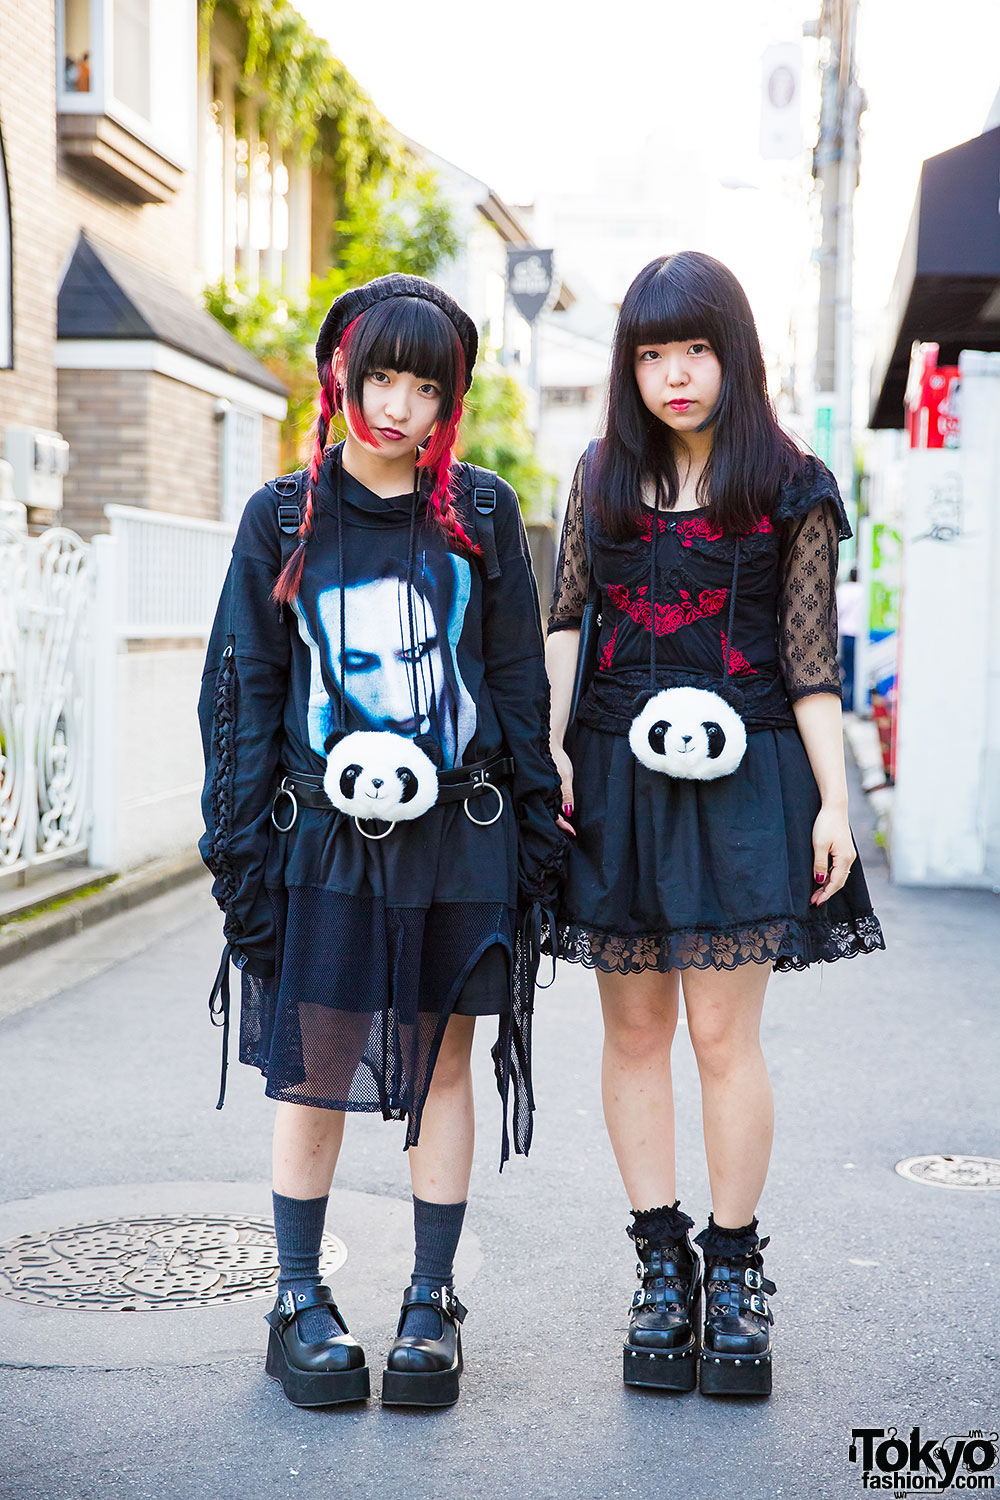 Harajuku Girls In All Black W Panda Pouches Marilyn Manson Mon Lily Nincompoop Capacity